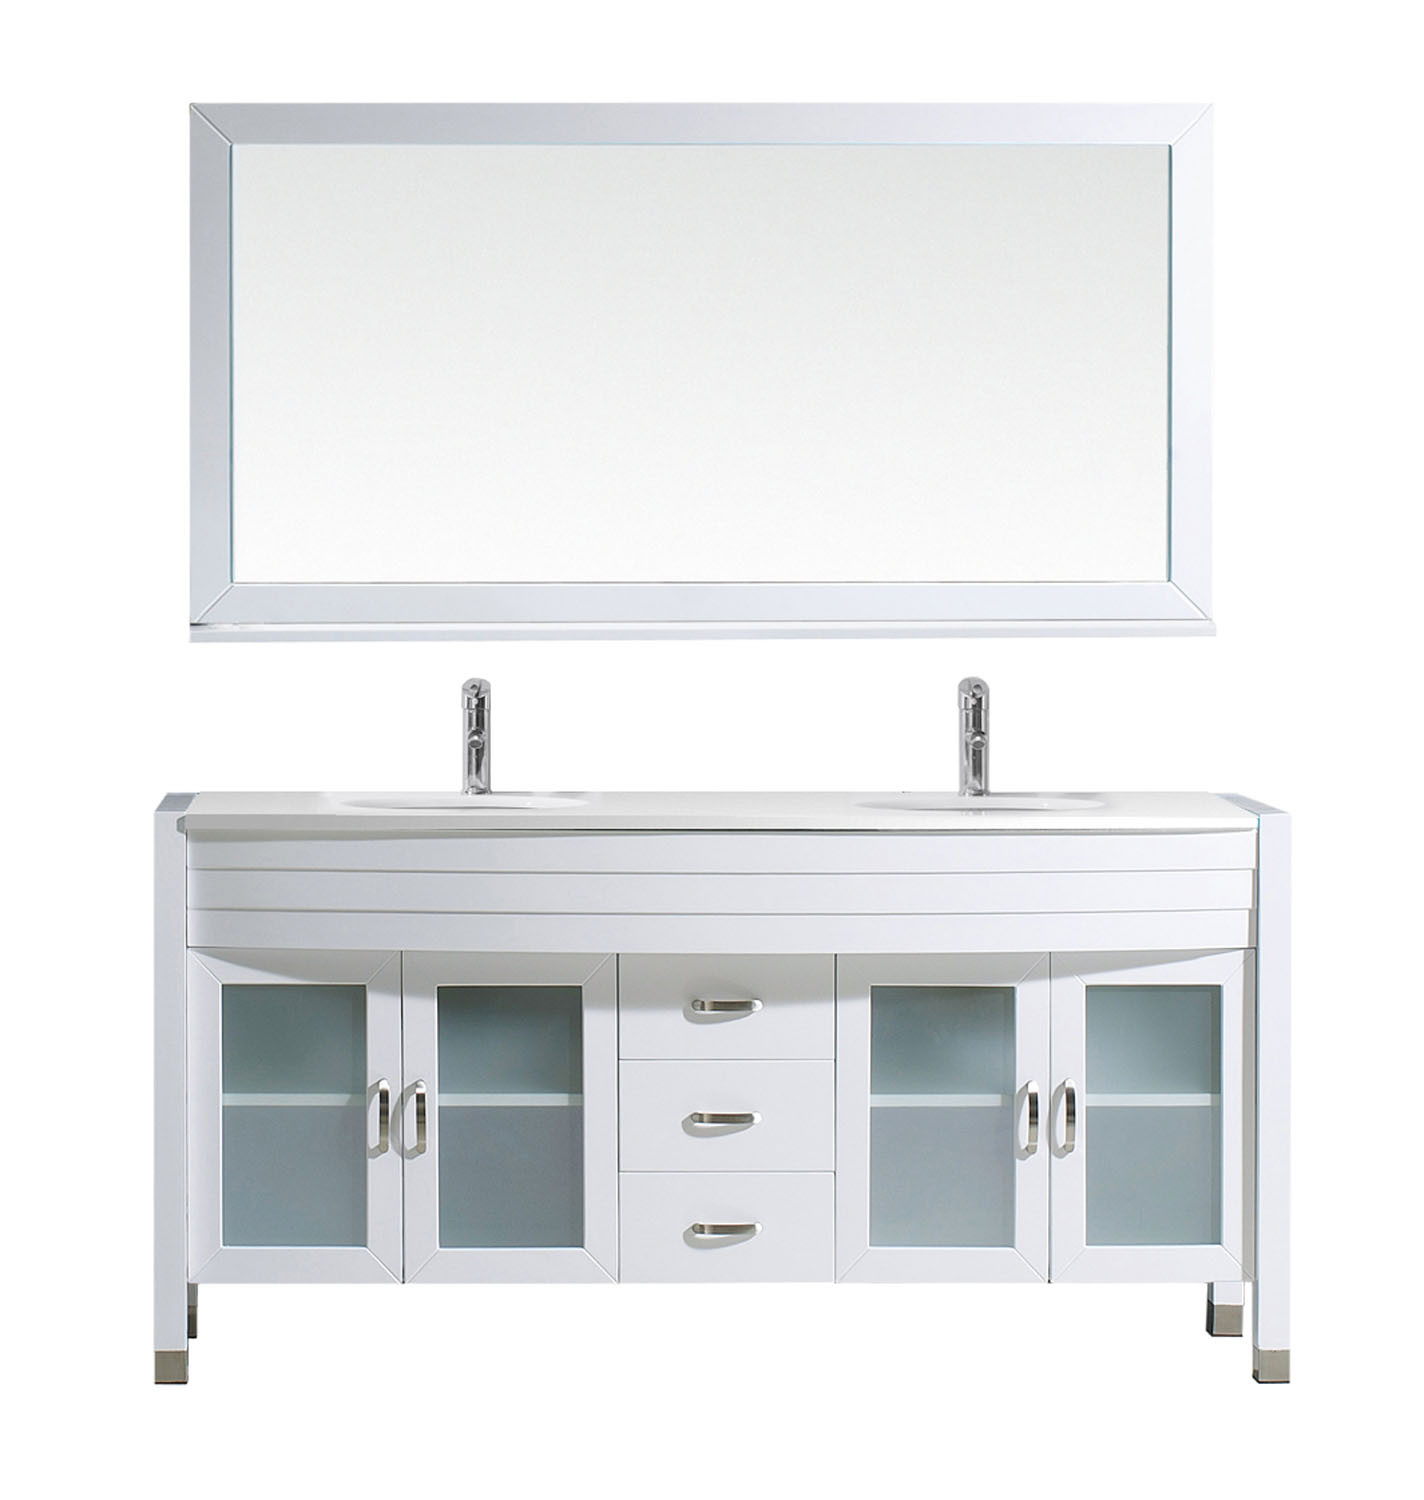 Virtu MD-499-S-WH Ava 63 Inch Double Bathroom Vanity Set In White With Engineered Stone Top